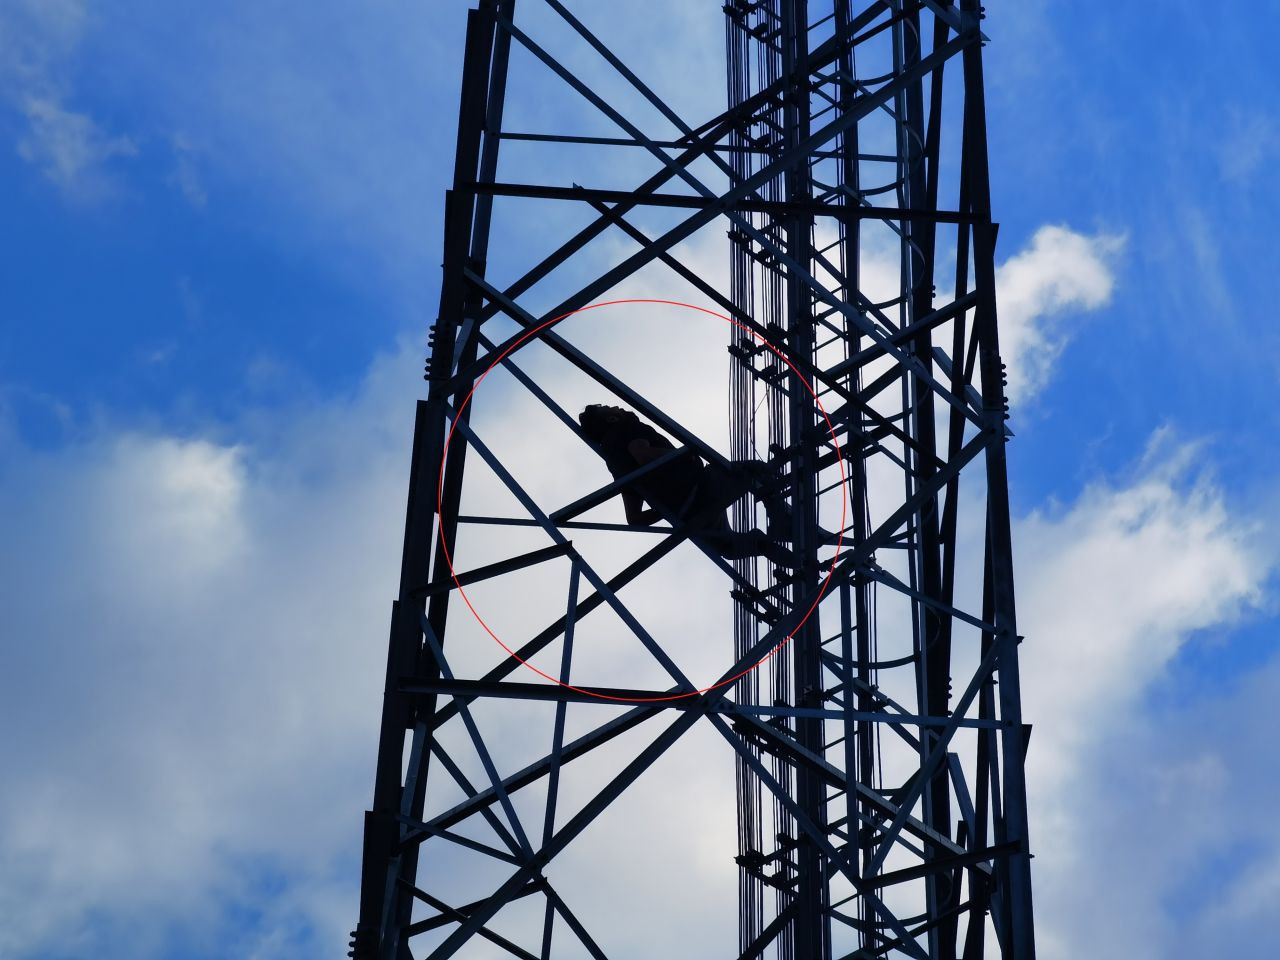 Intoxicated man falls asleep on transmission tower in western Turkey - Page 1